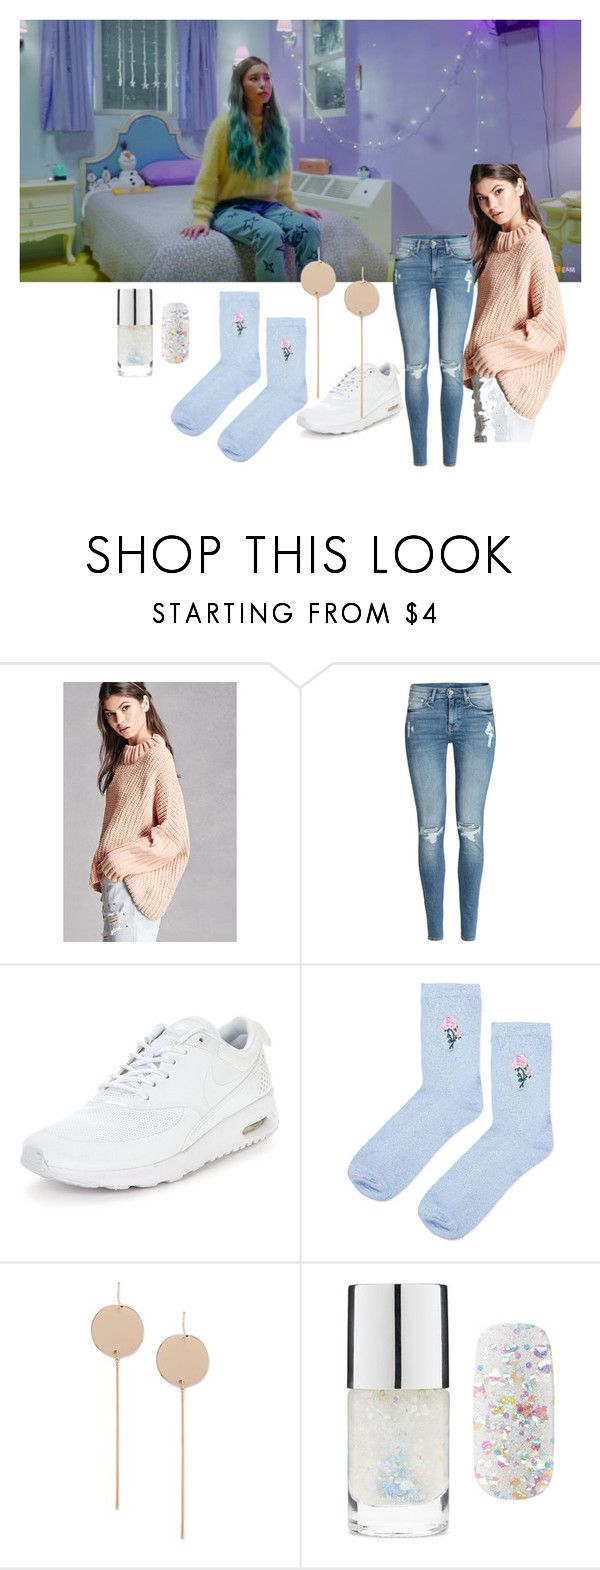 """Heize's ""Star"""" by mandalinaqitrydewi on Polyvore featuring Forever 21, H&M, NIKE and Topshop"